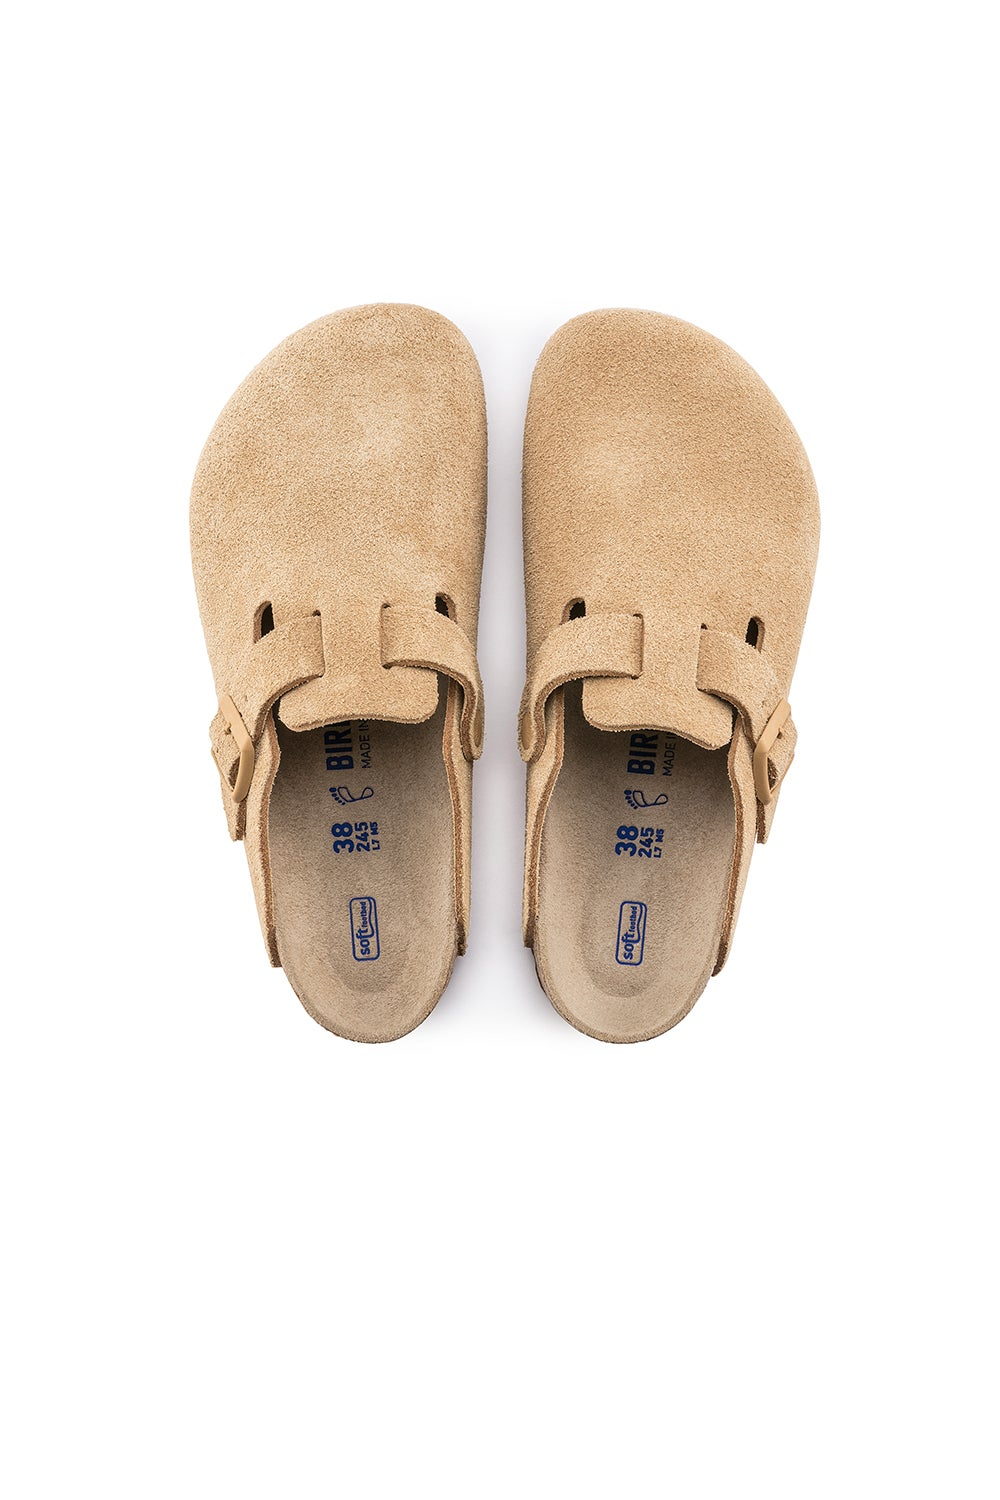 Birkenstock Boston SFB Suede Latte Cream